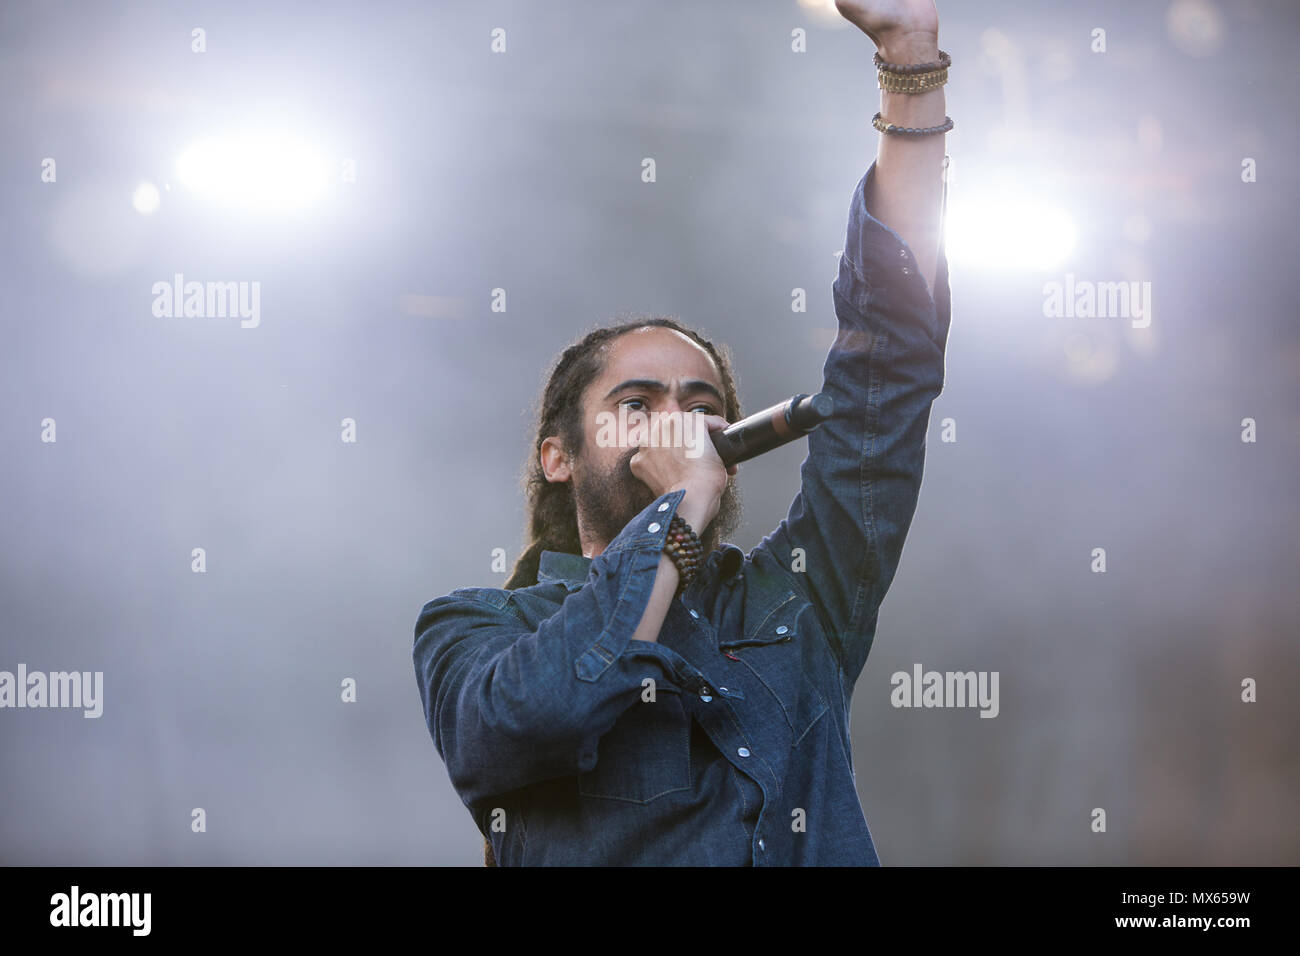 Toronto, Canada, 02nd June, 2018, Damian Marley, youngest son of reggae legend Bob Marley performs at the Fiel trip Music & Arts Festival in Toronto, Canada Credit: topconcertphoto/Alamy Live News - Stock Image